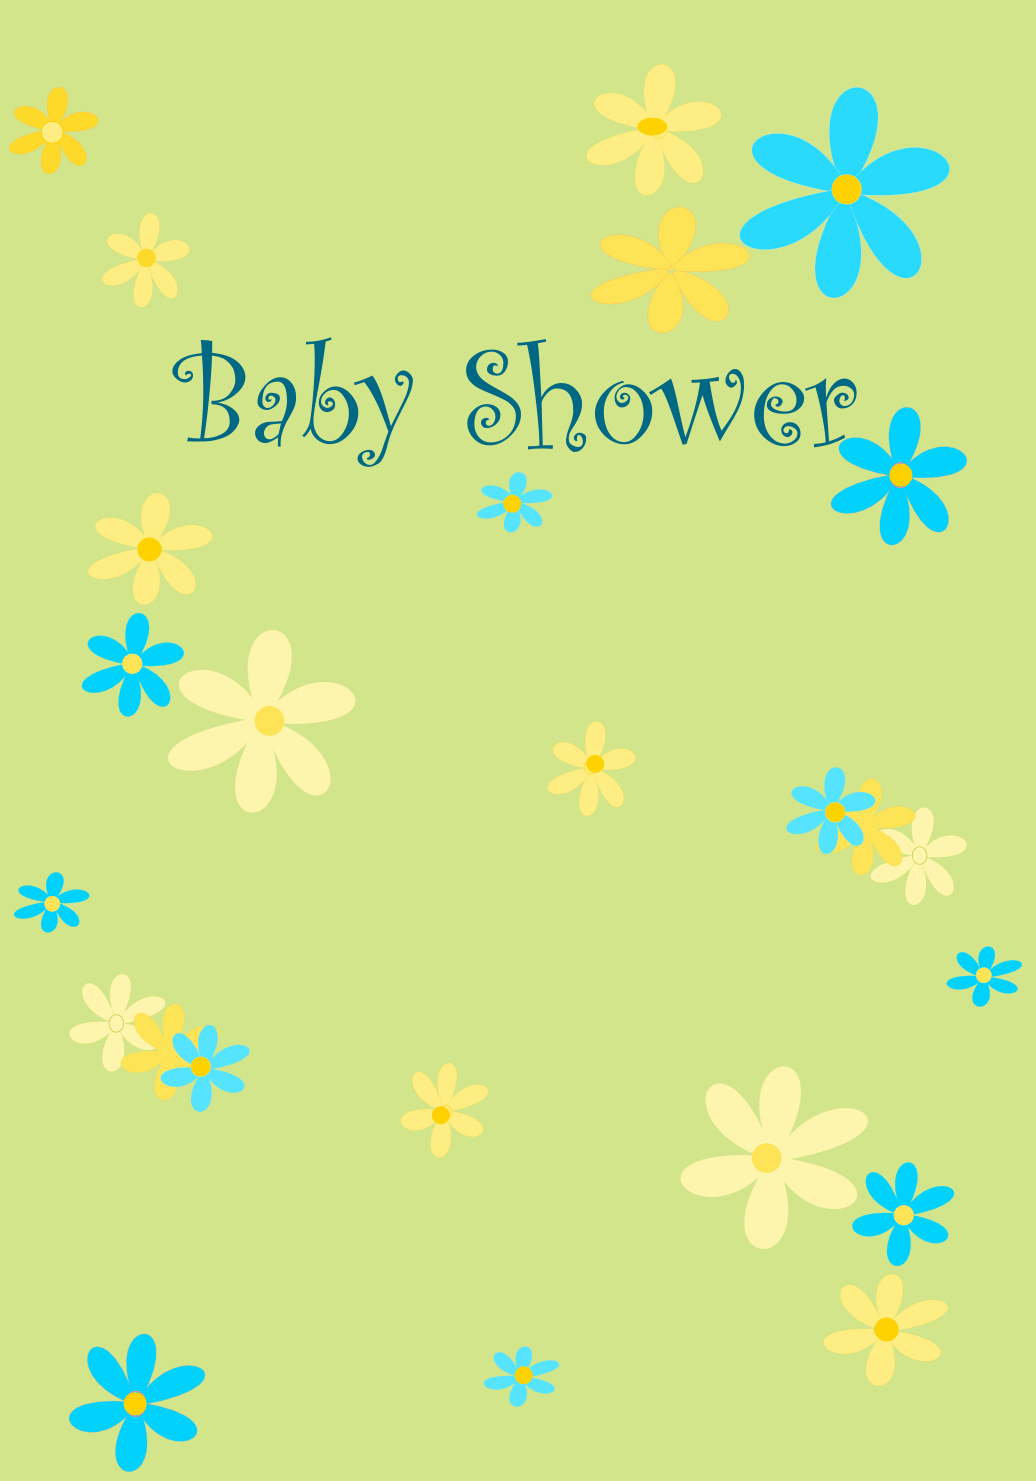 Baby Shower Card Printable New Printable Birthday Cards Printable Baby Shower Cards